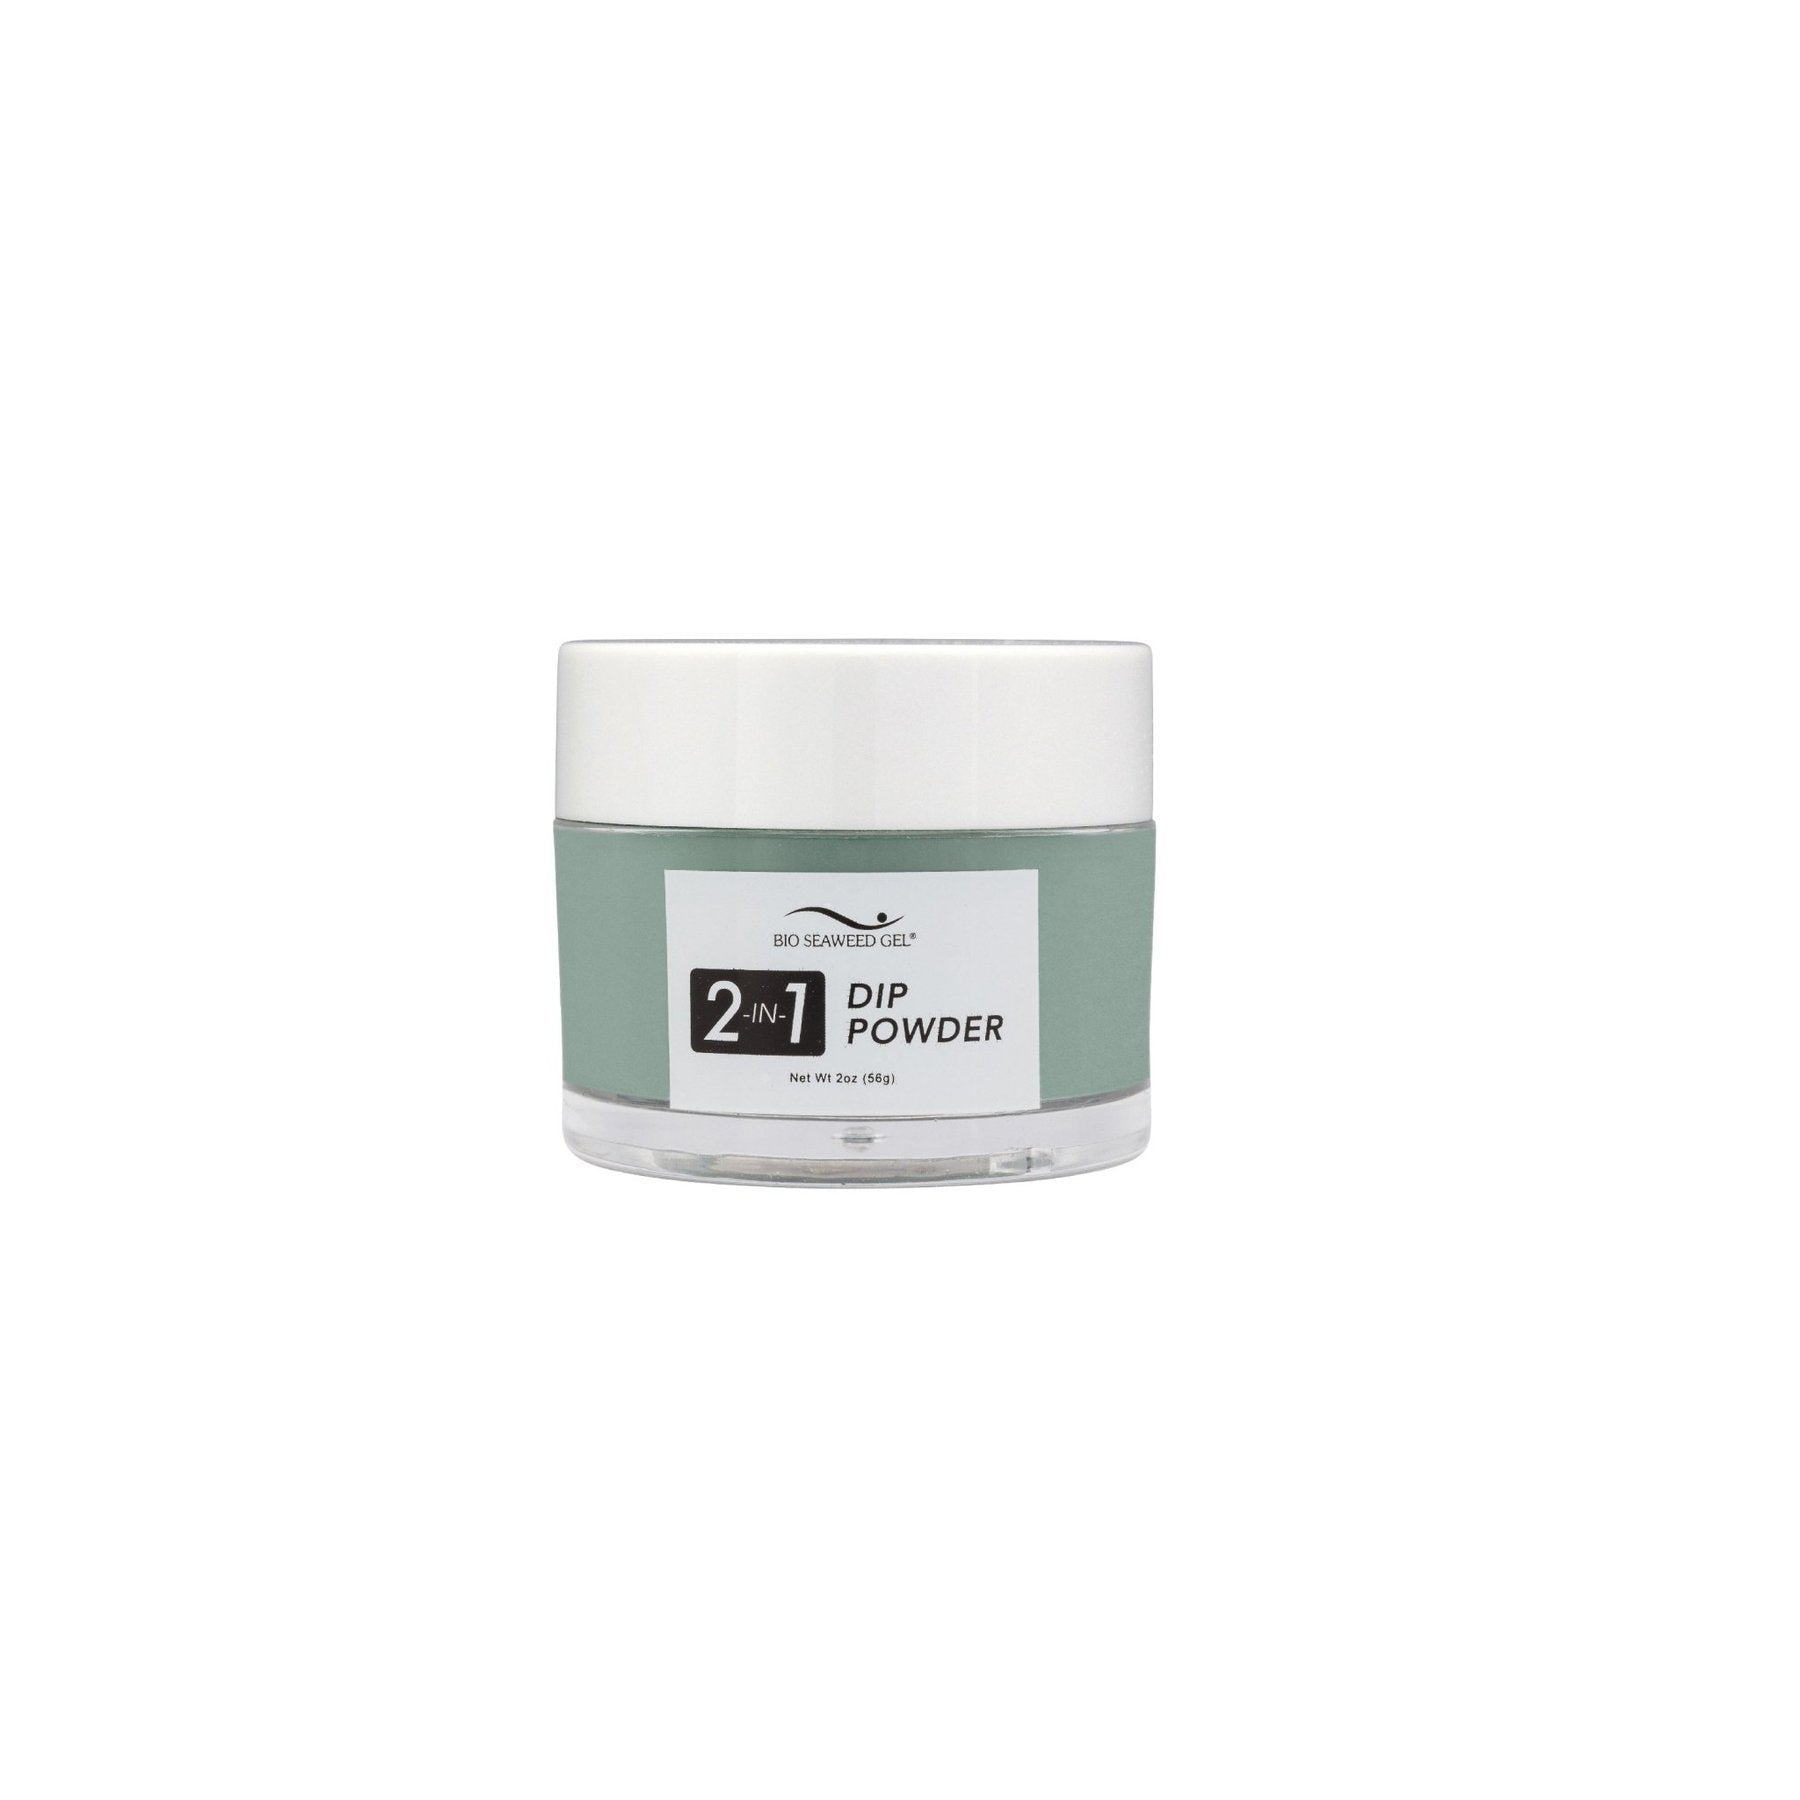 91 POISON IVY | Bio Seaweed Gel® Dip Powder System - CM Nails & Beauty Supply